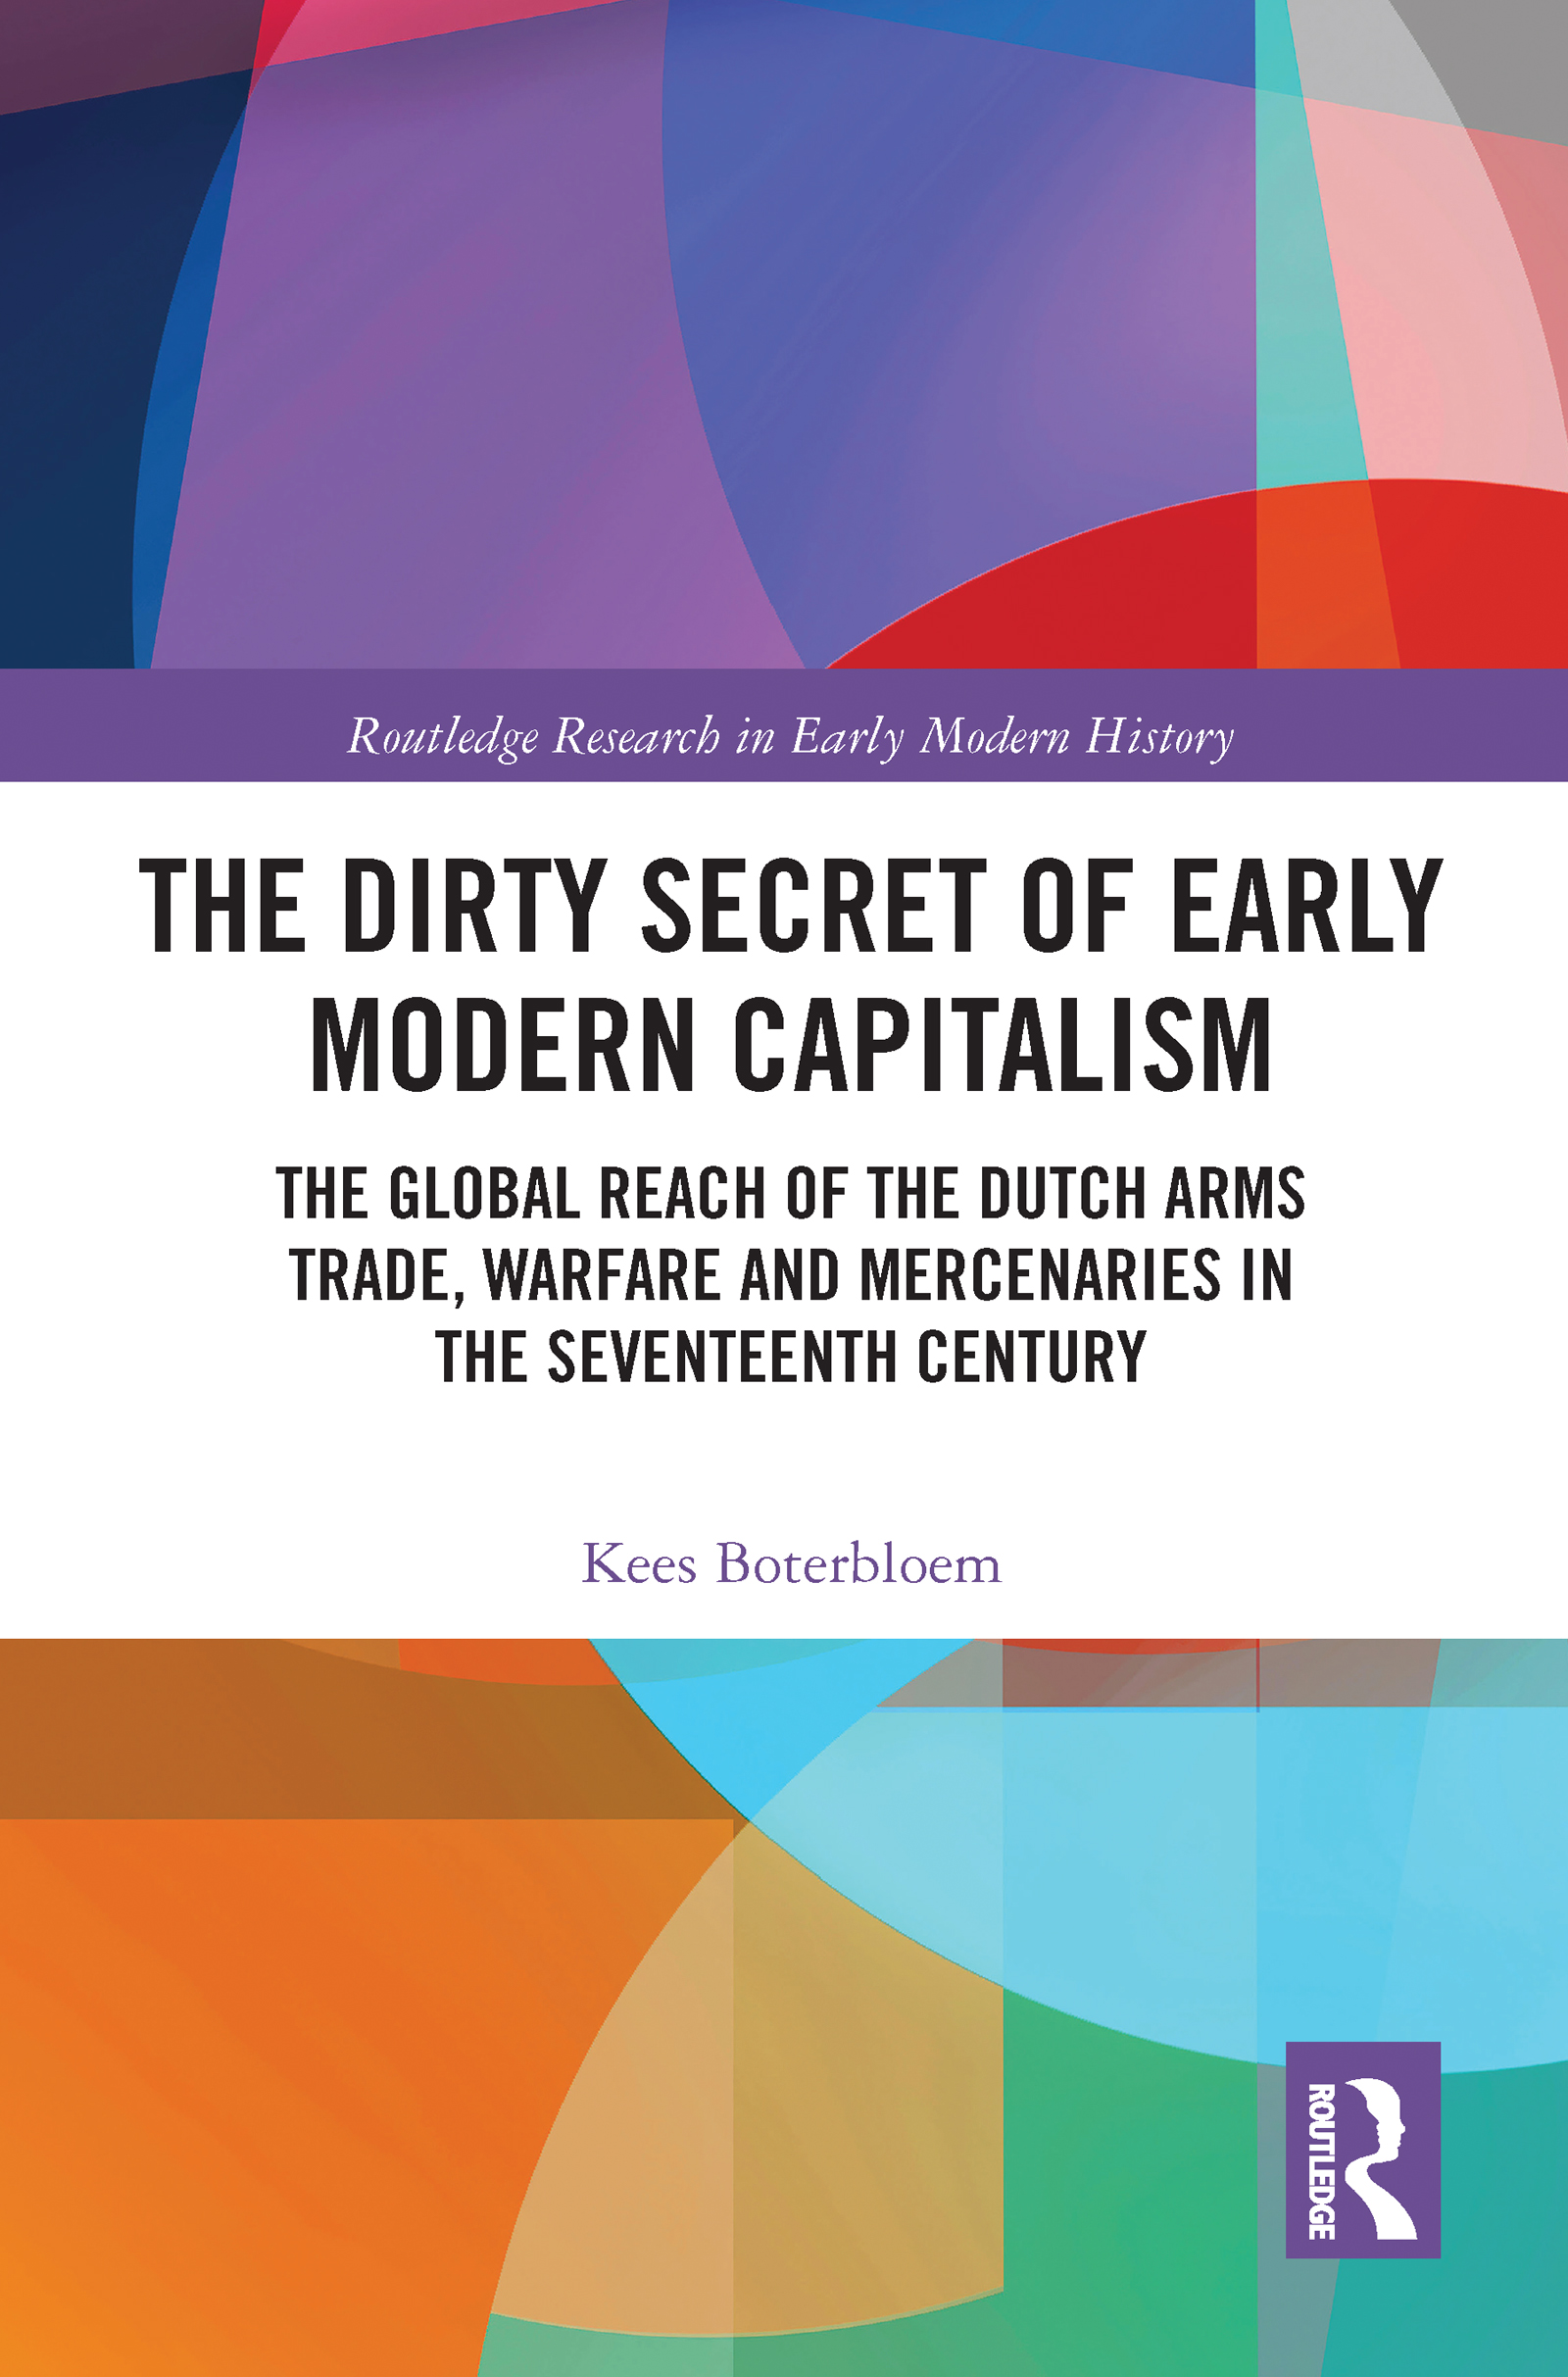 The Dirty Secret of Early Modern Capitalism